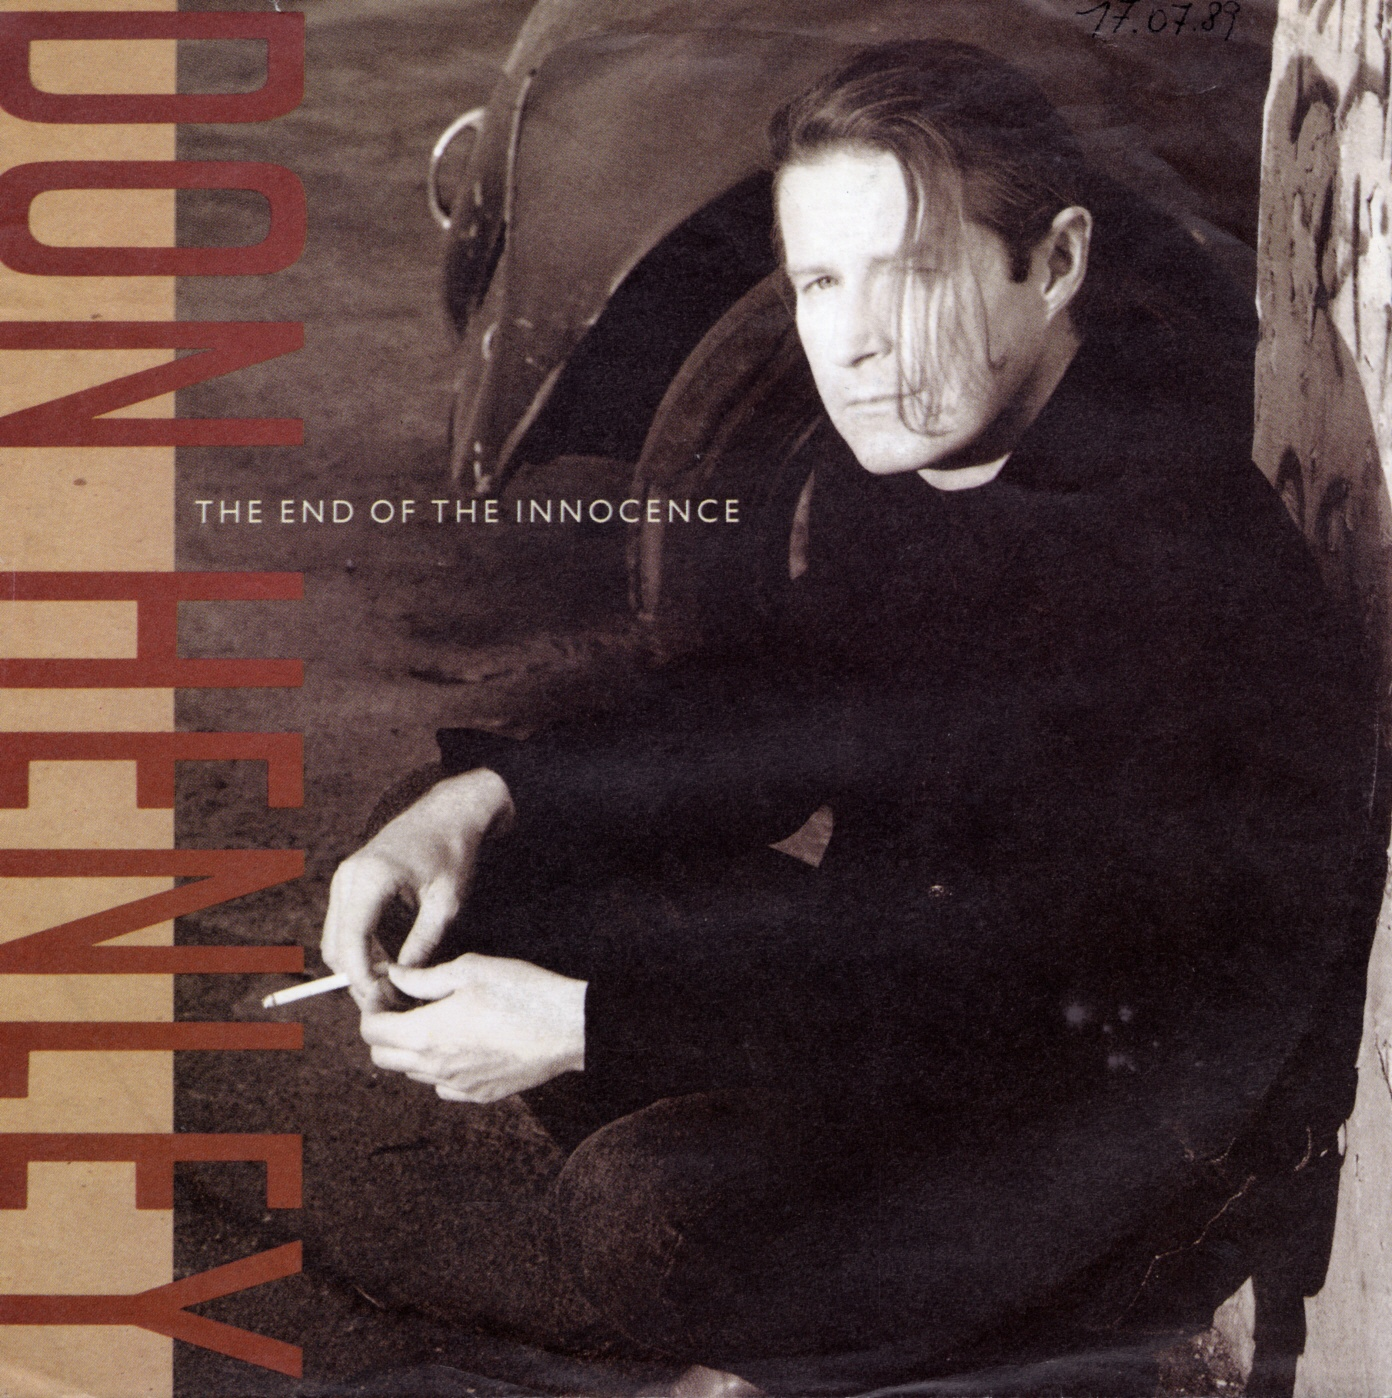 Cover: The end of the innocence, Don Henley